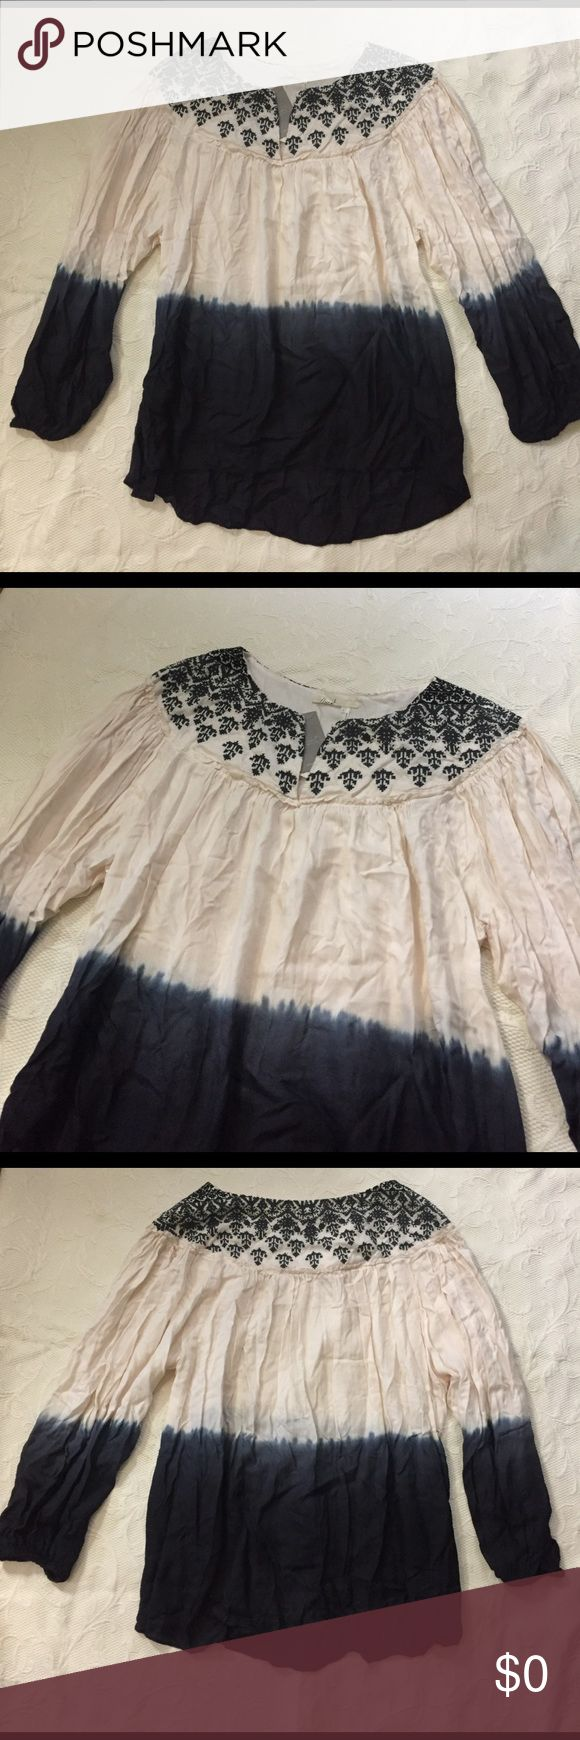 Floreat Dip Dye Blouse Embroidered yoke tie dye hombre peasant blouse. Never worn, new with tags. No trades. Anthropologie Tops Blouses